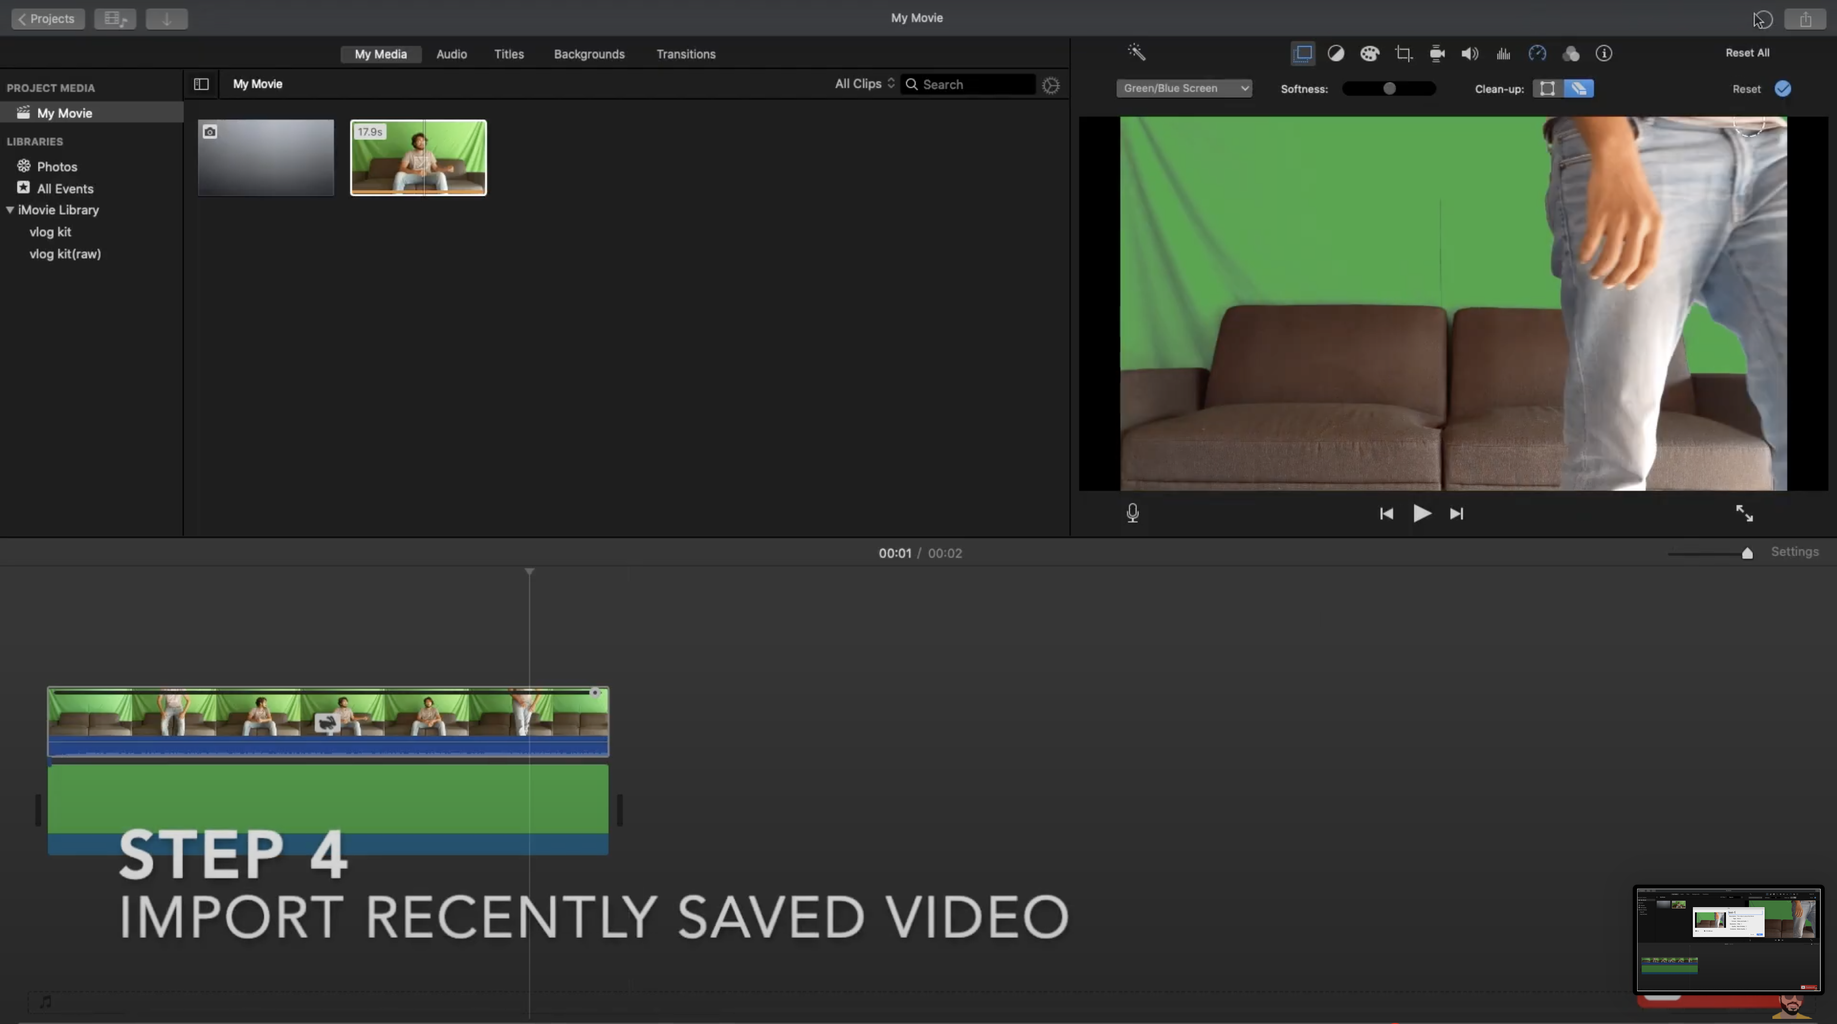 Import Recently Saved Video